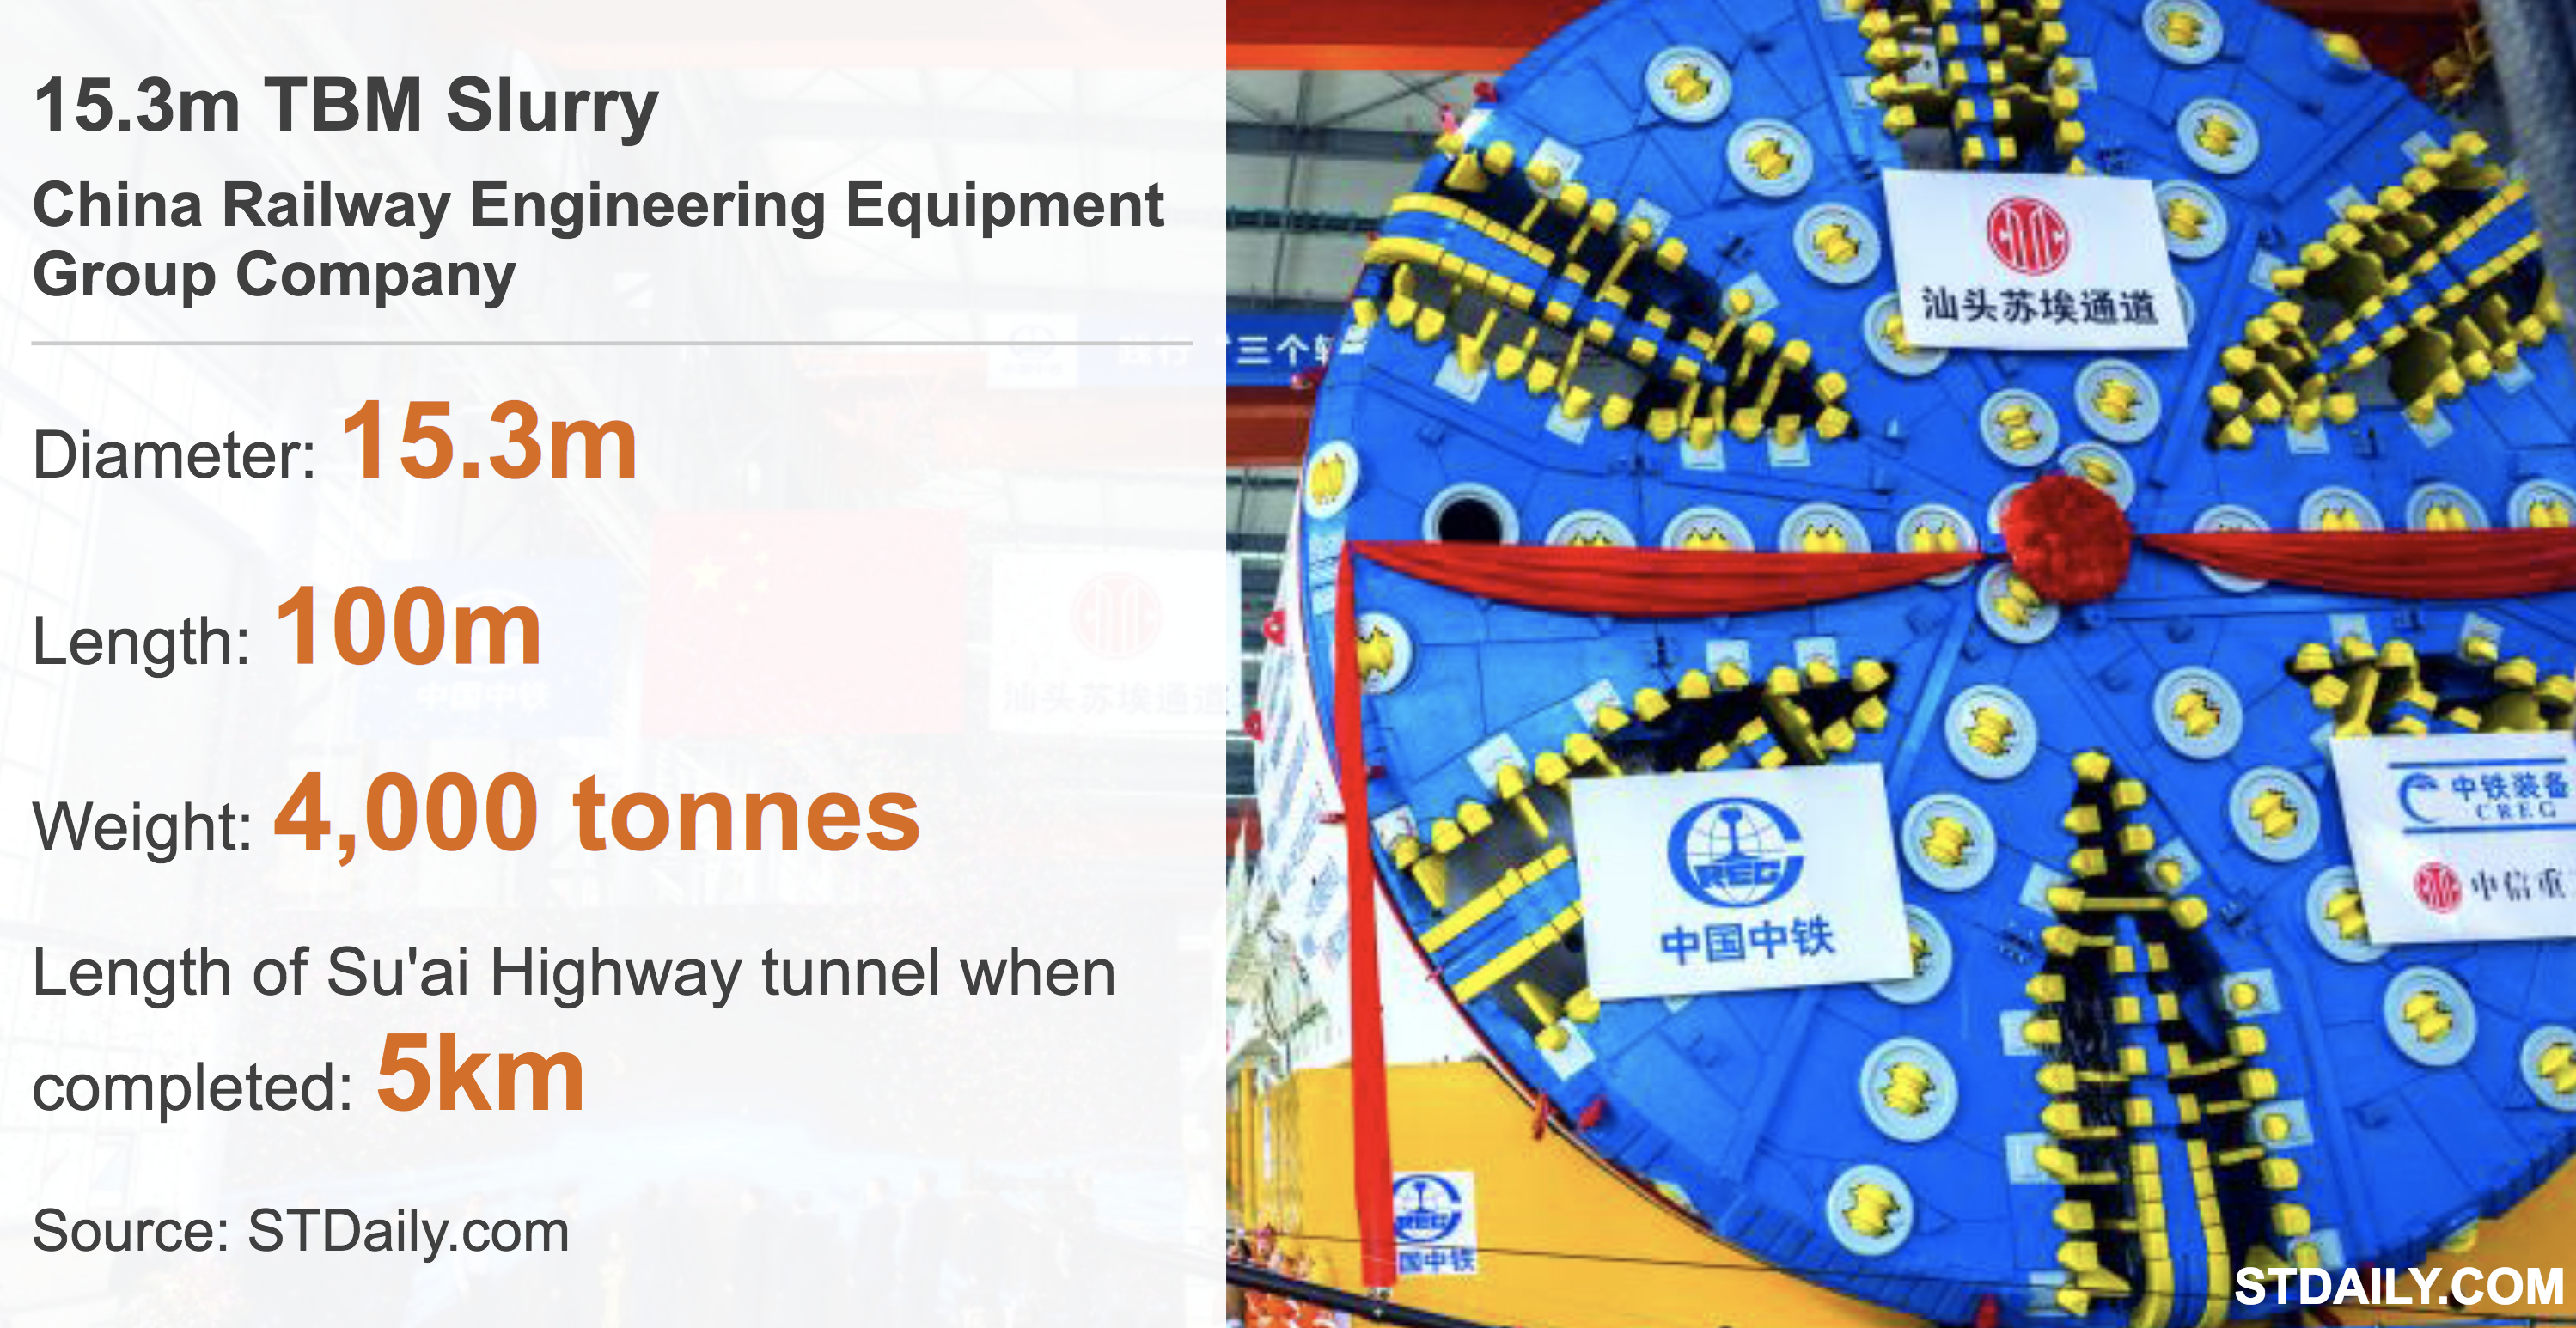 Facts and figures about the TBM slurry machine